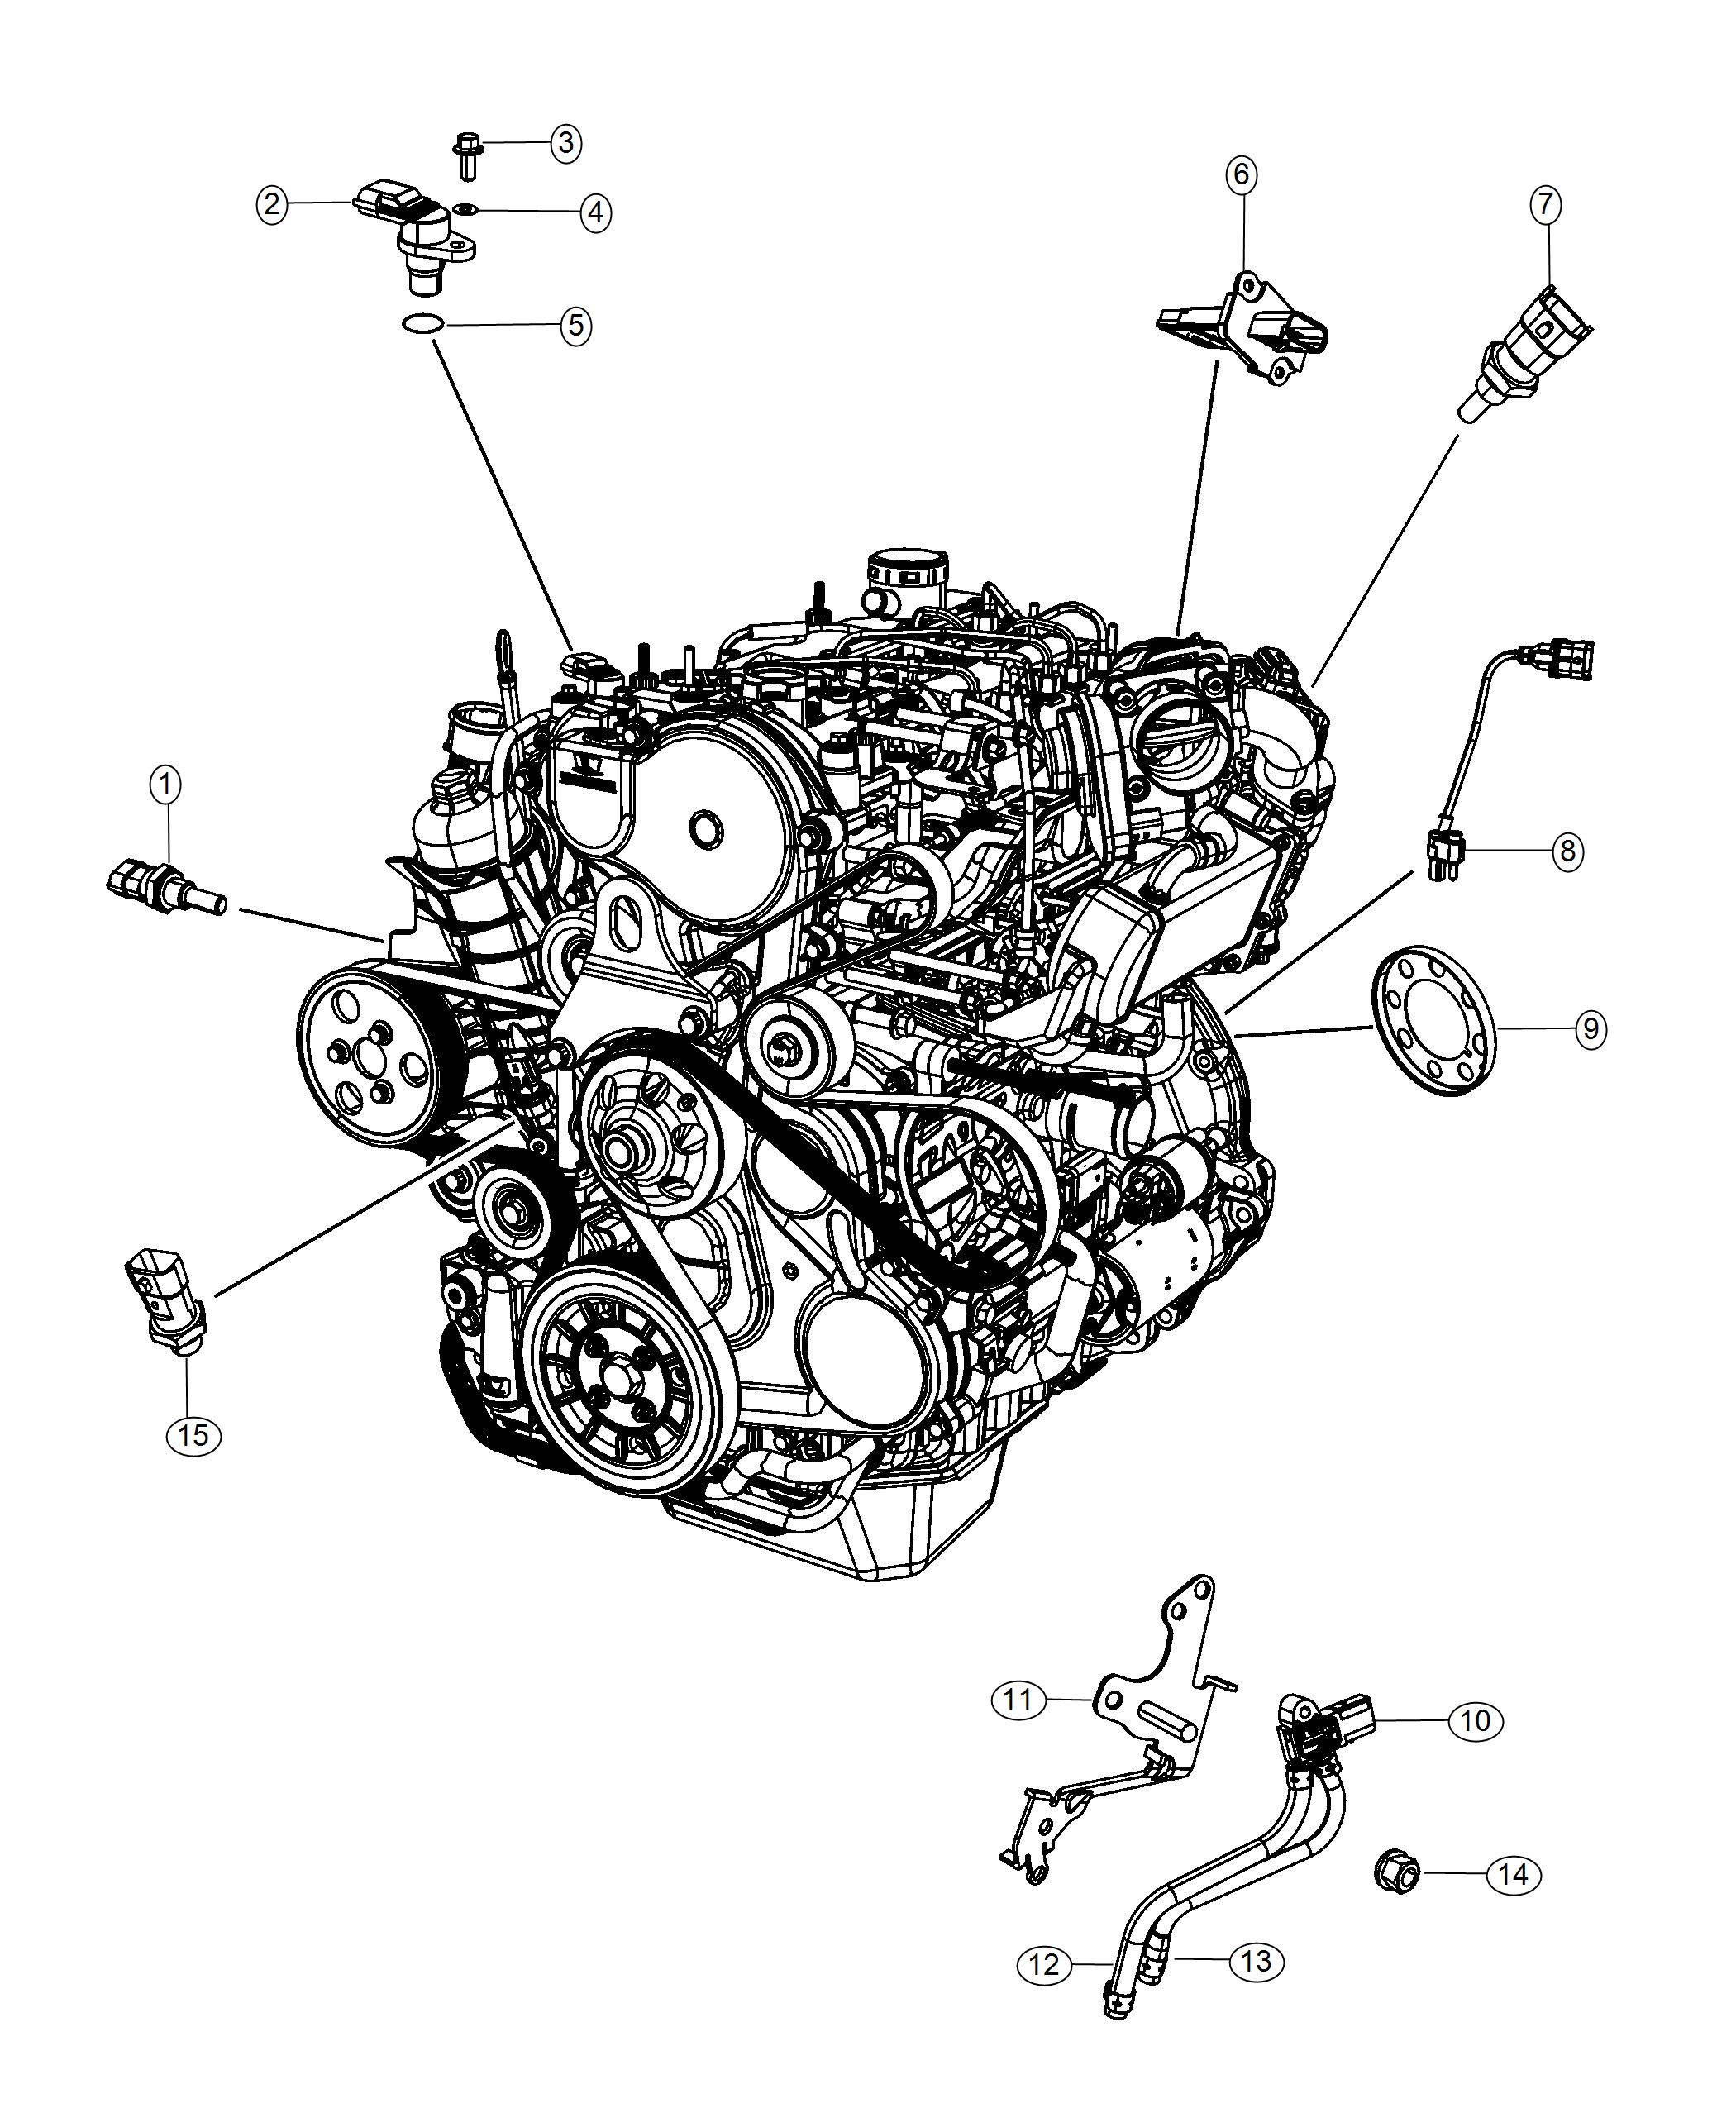 Ford Aspire Engine Diagram